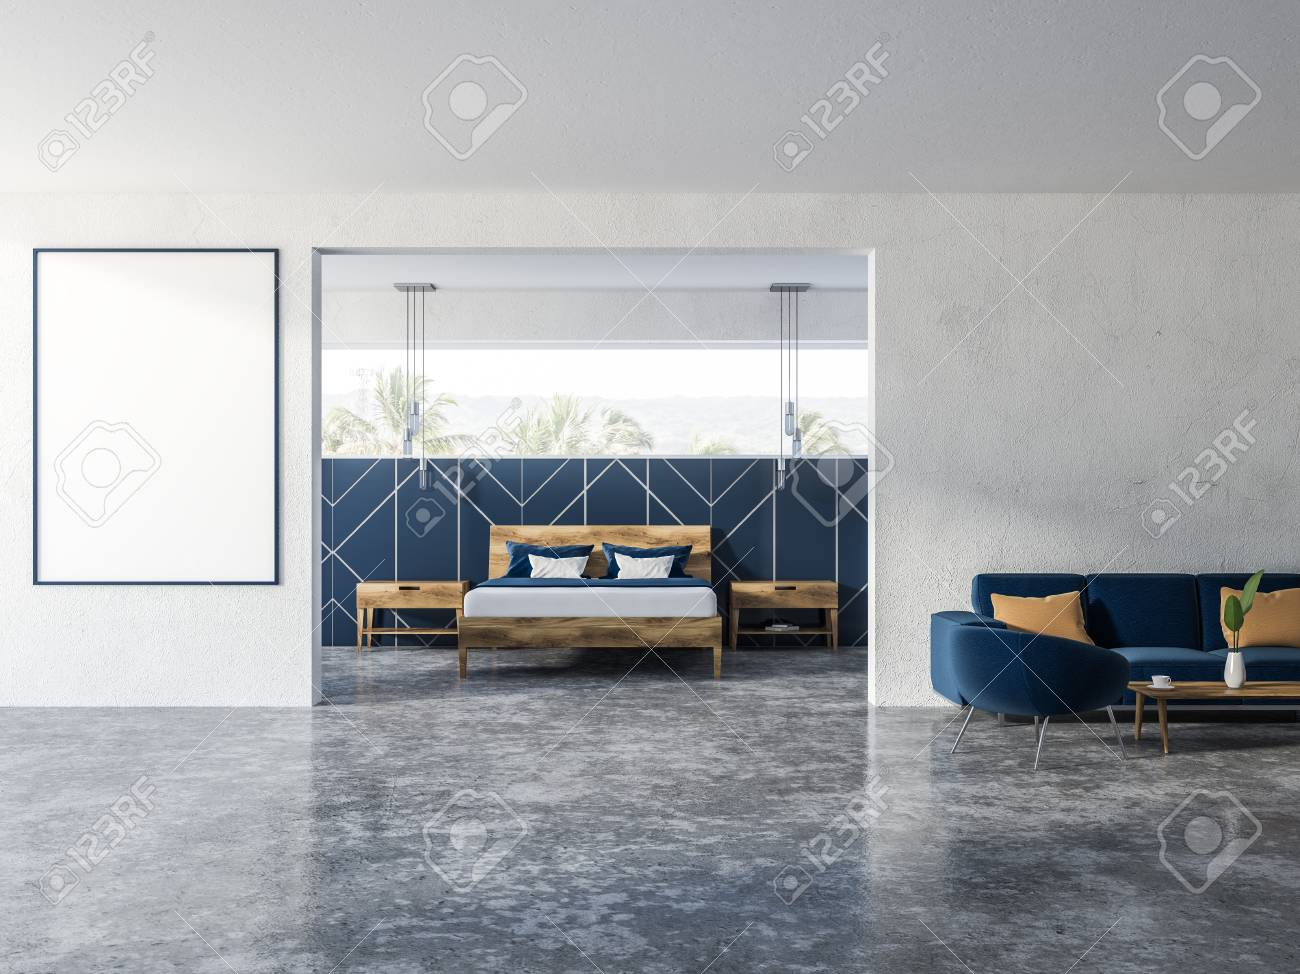 Blue And White Living Room Interior With Soft Blue Couch And